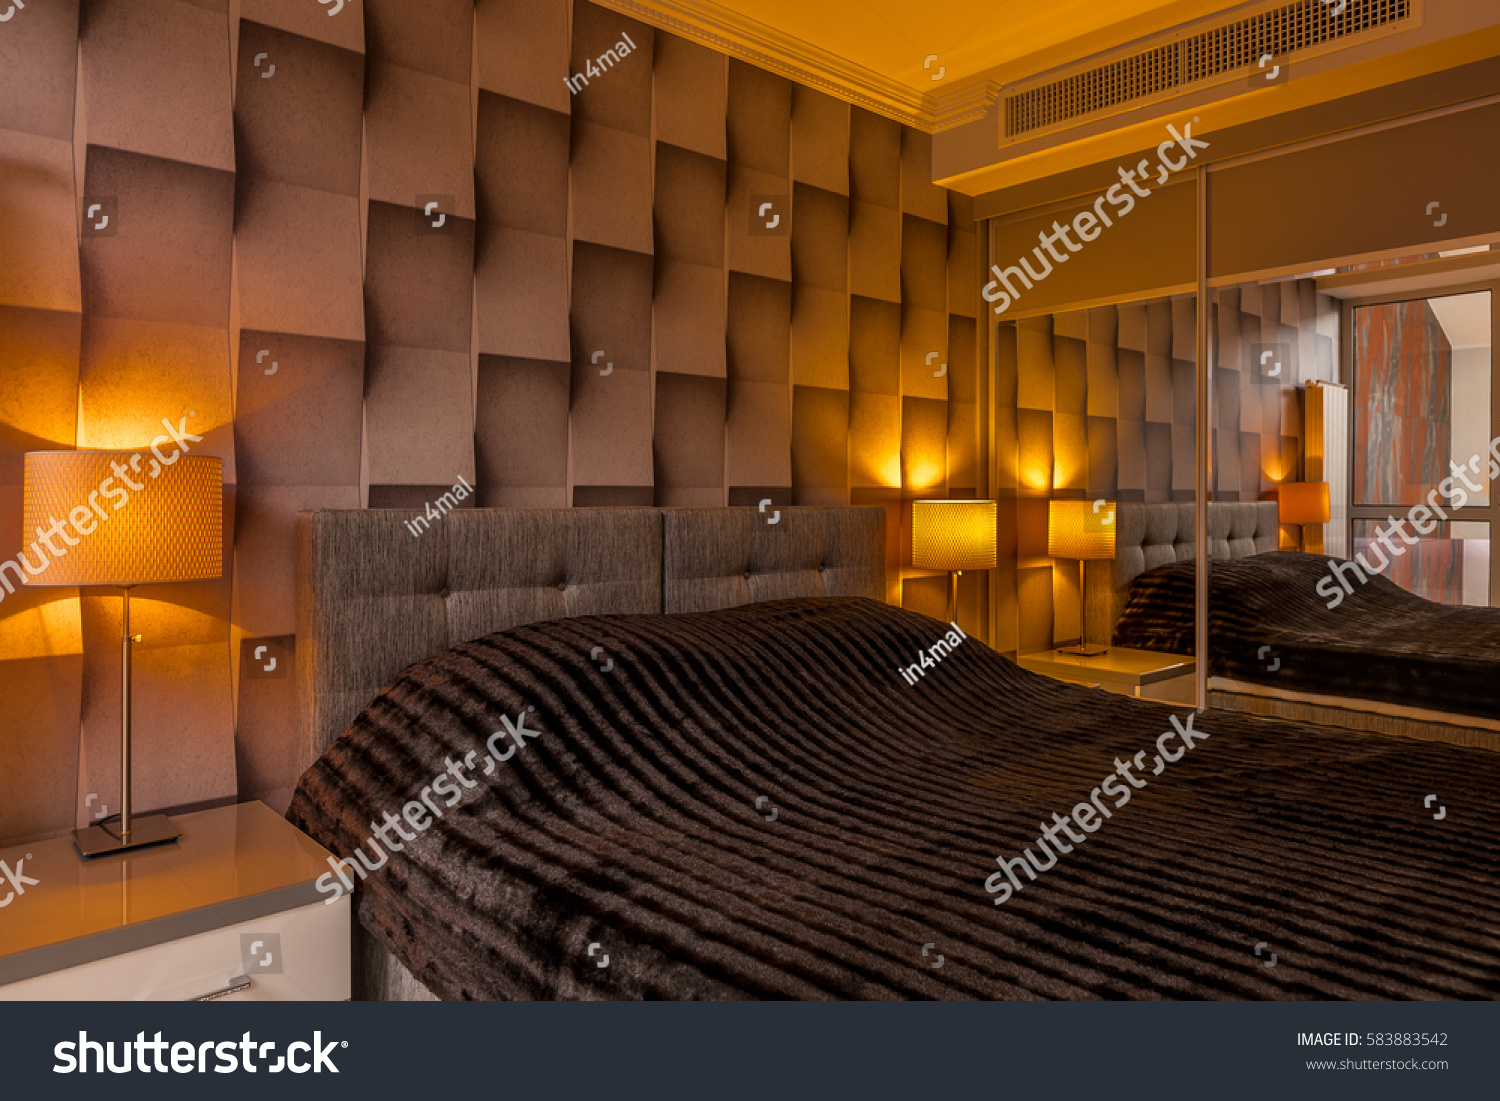 stock photo modern designed bedroom with creative brown d wallpaper and big bed 583883542